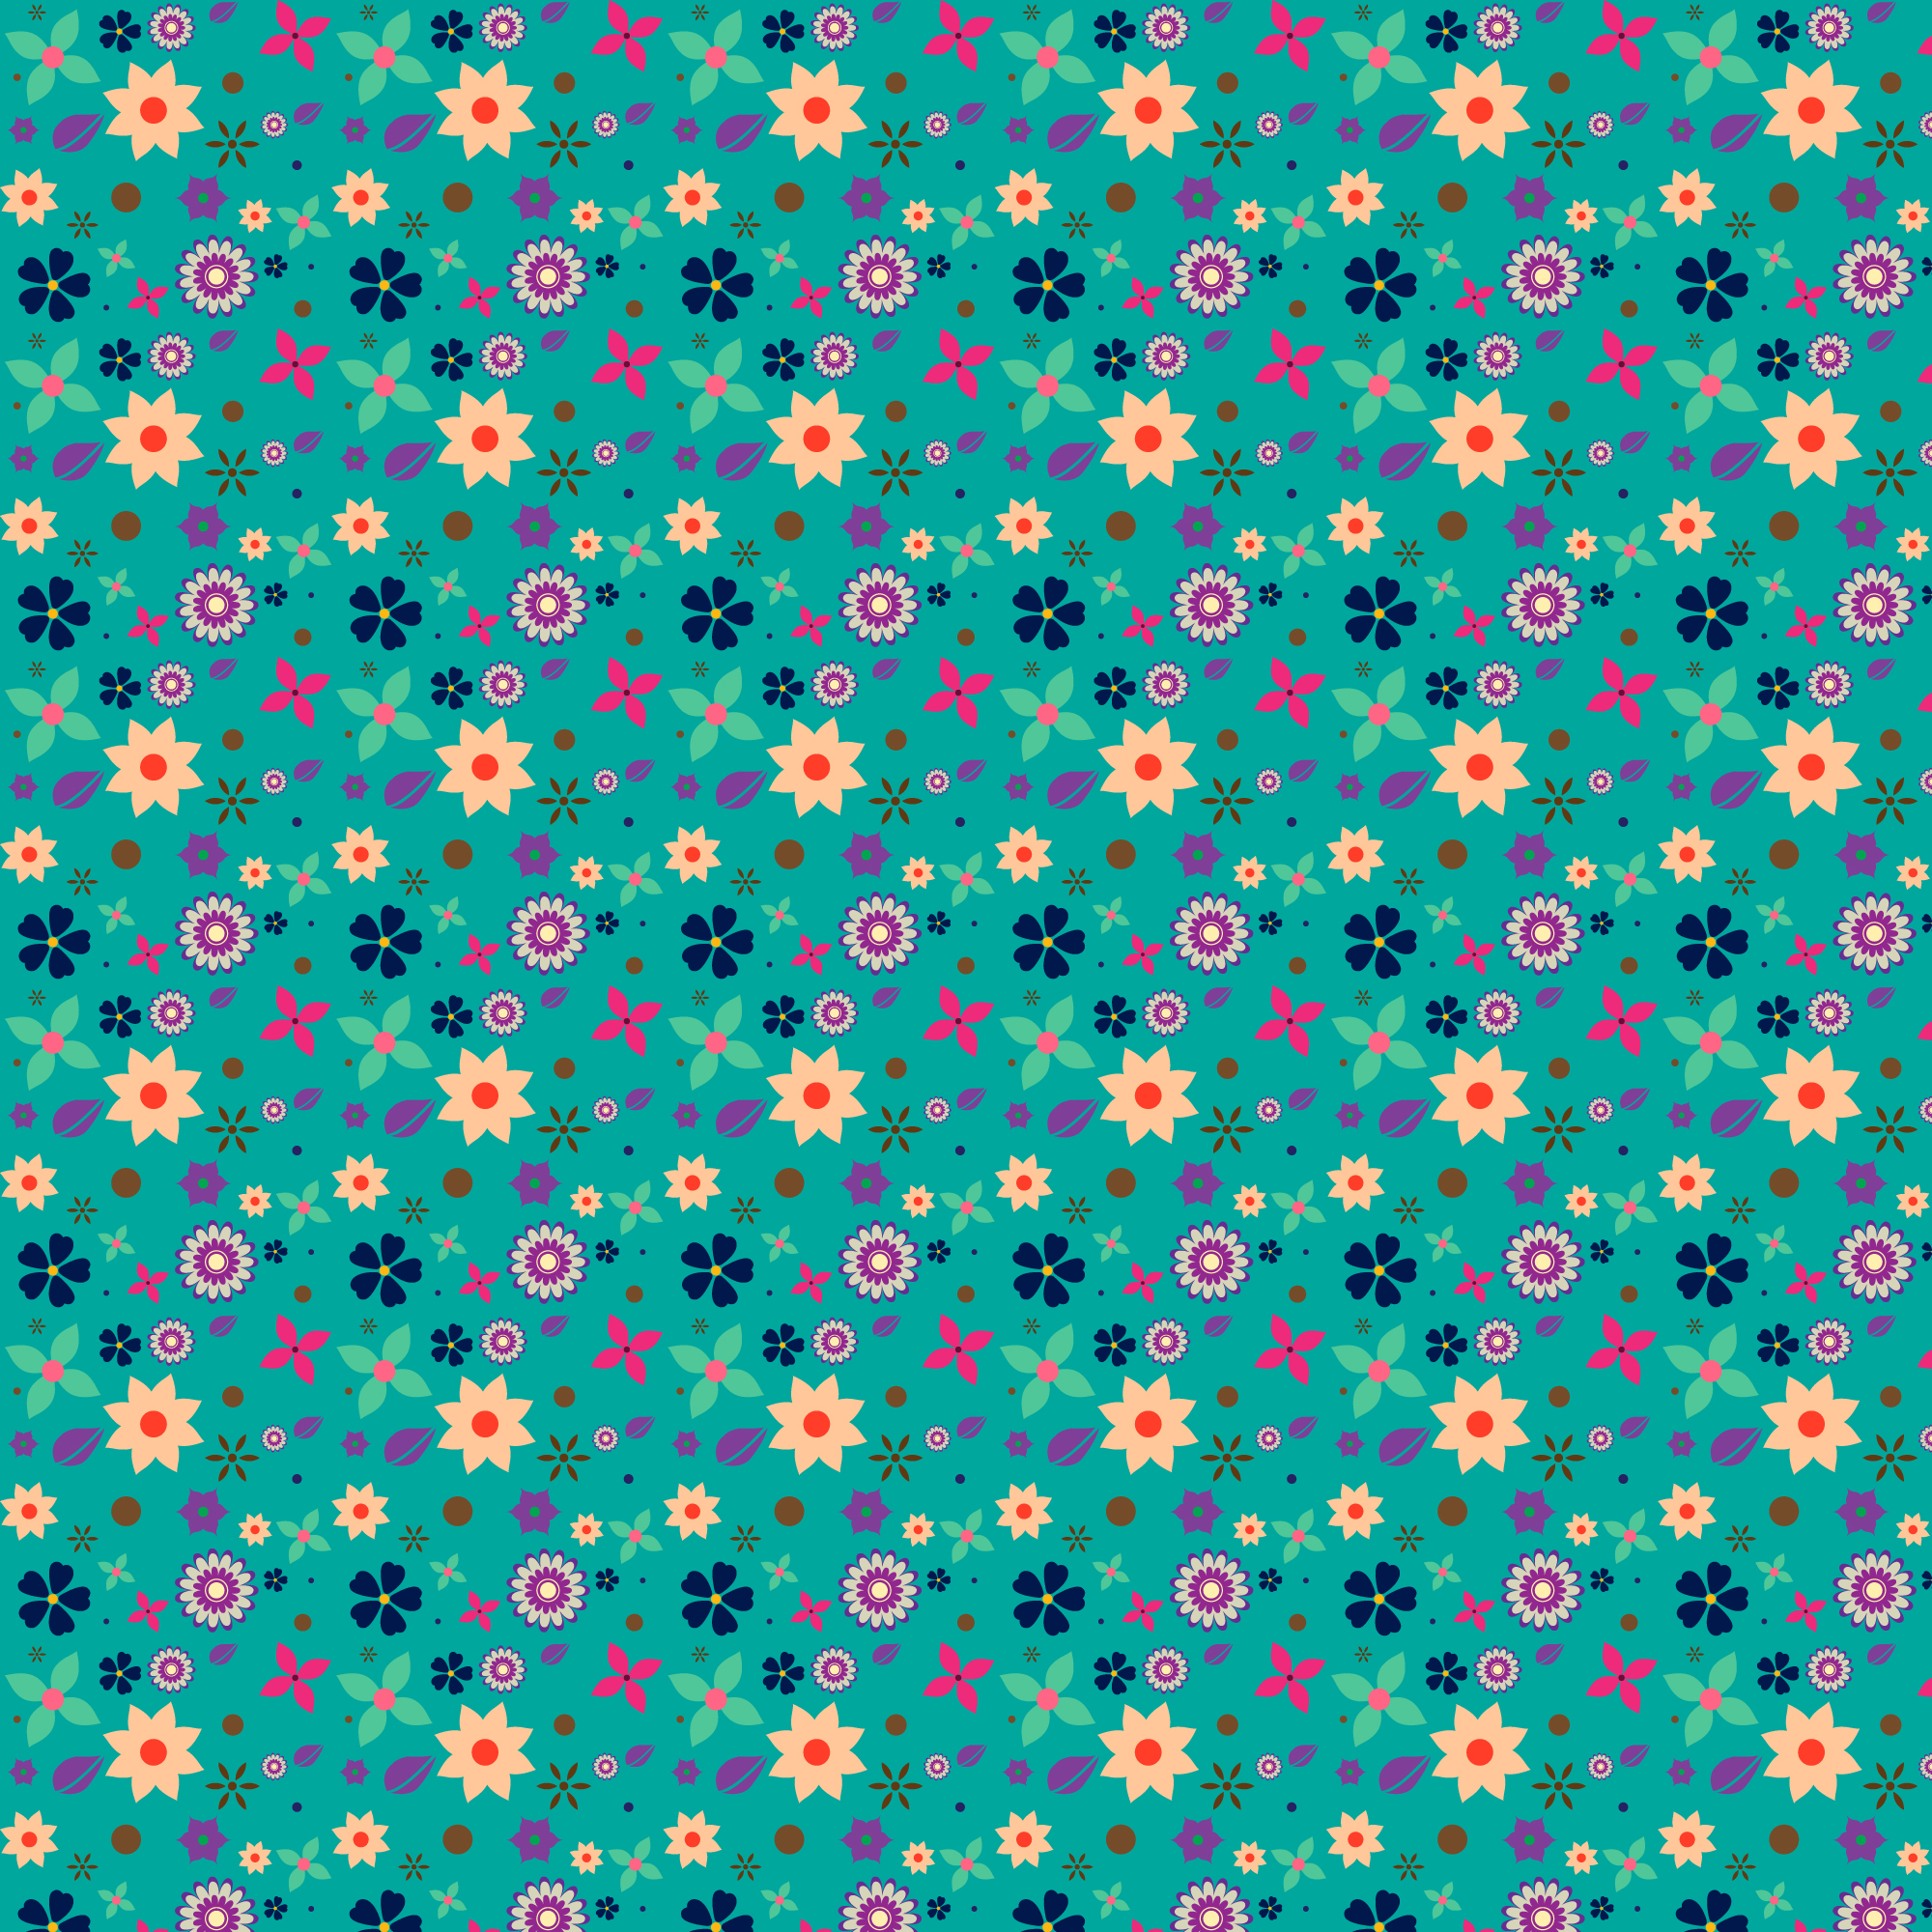 Floral pattern with aquamarine background